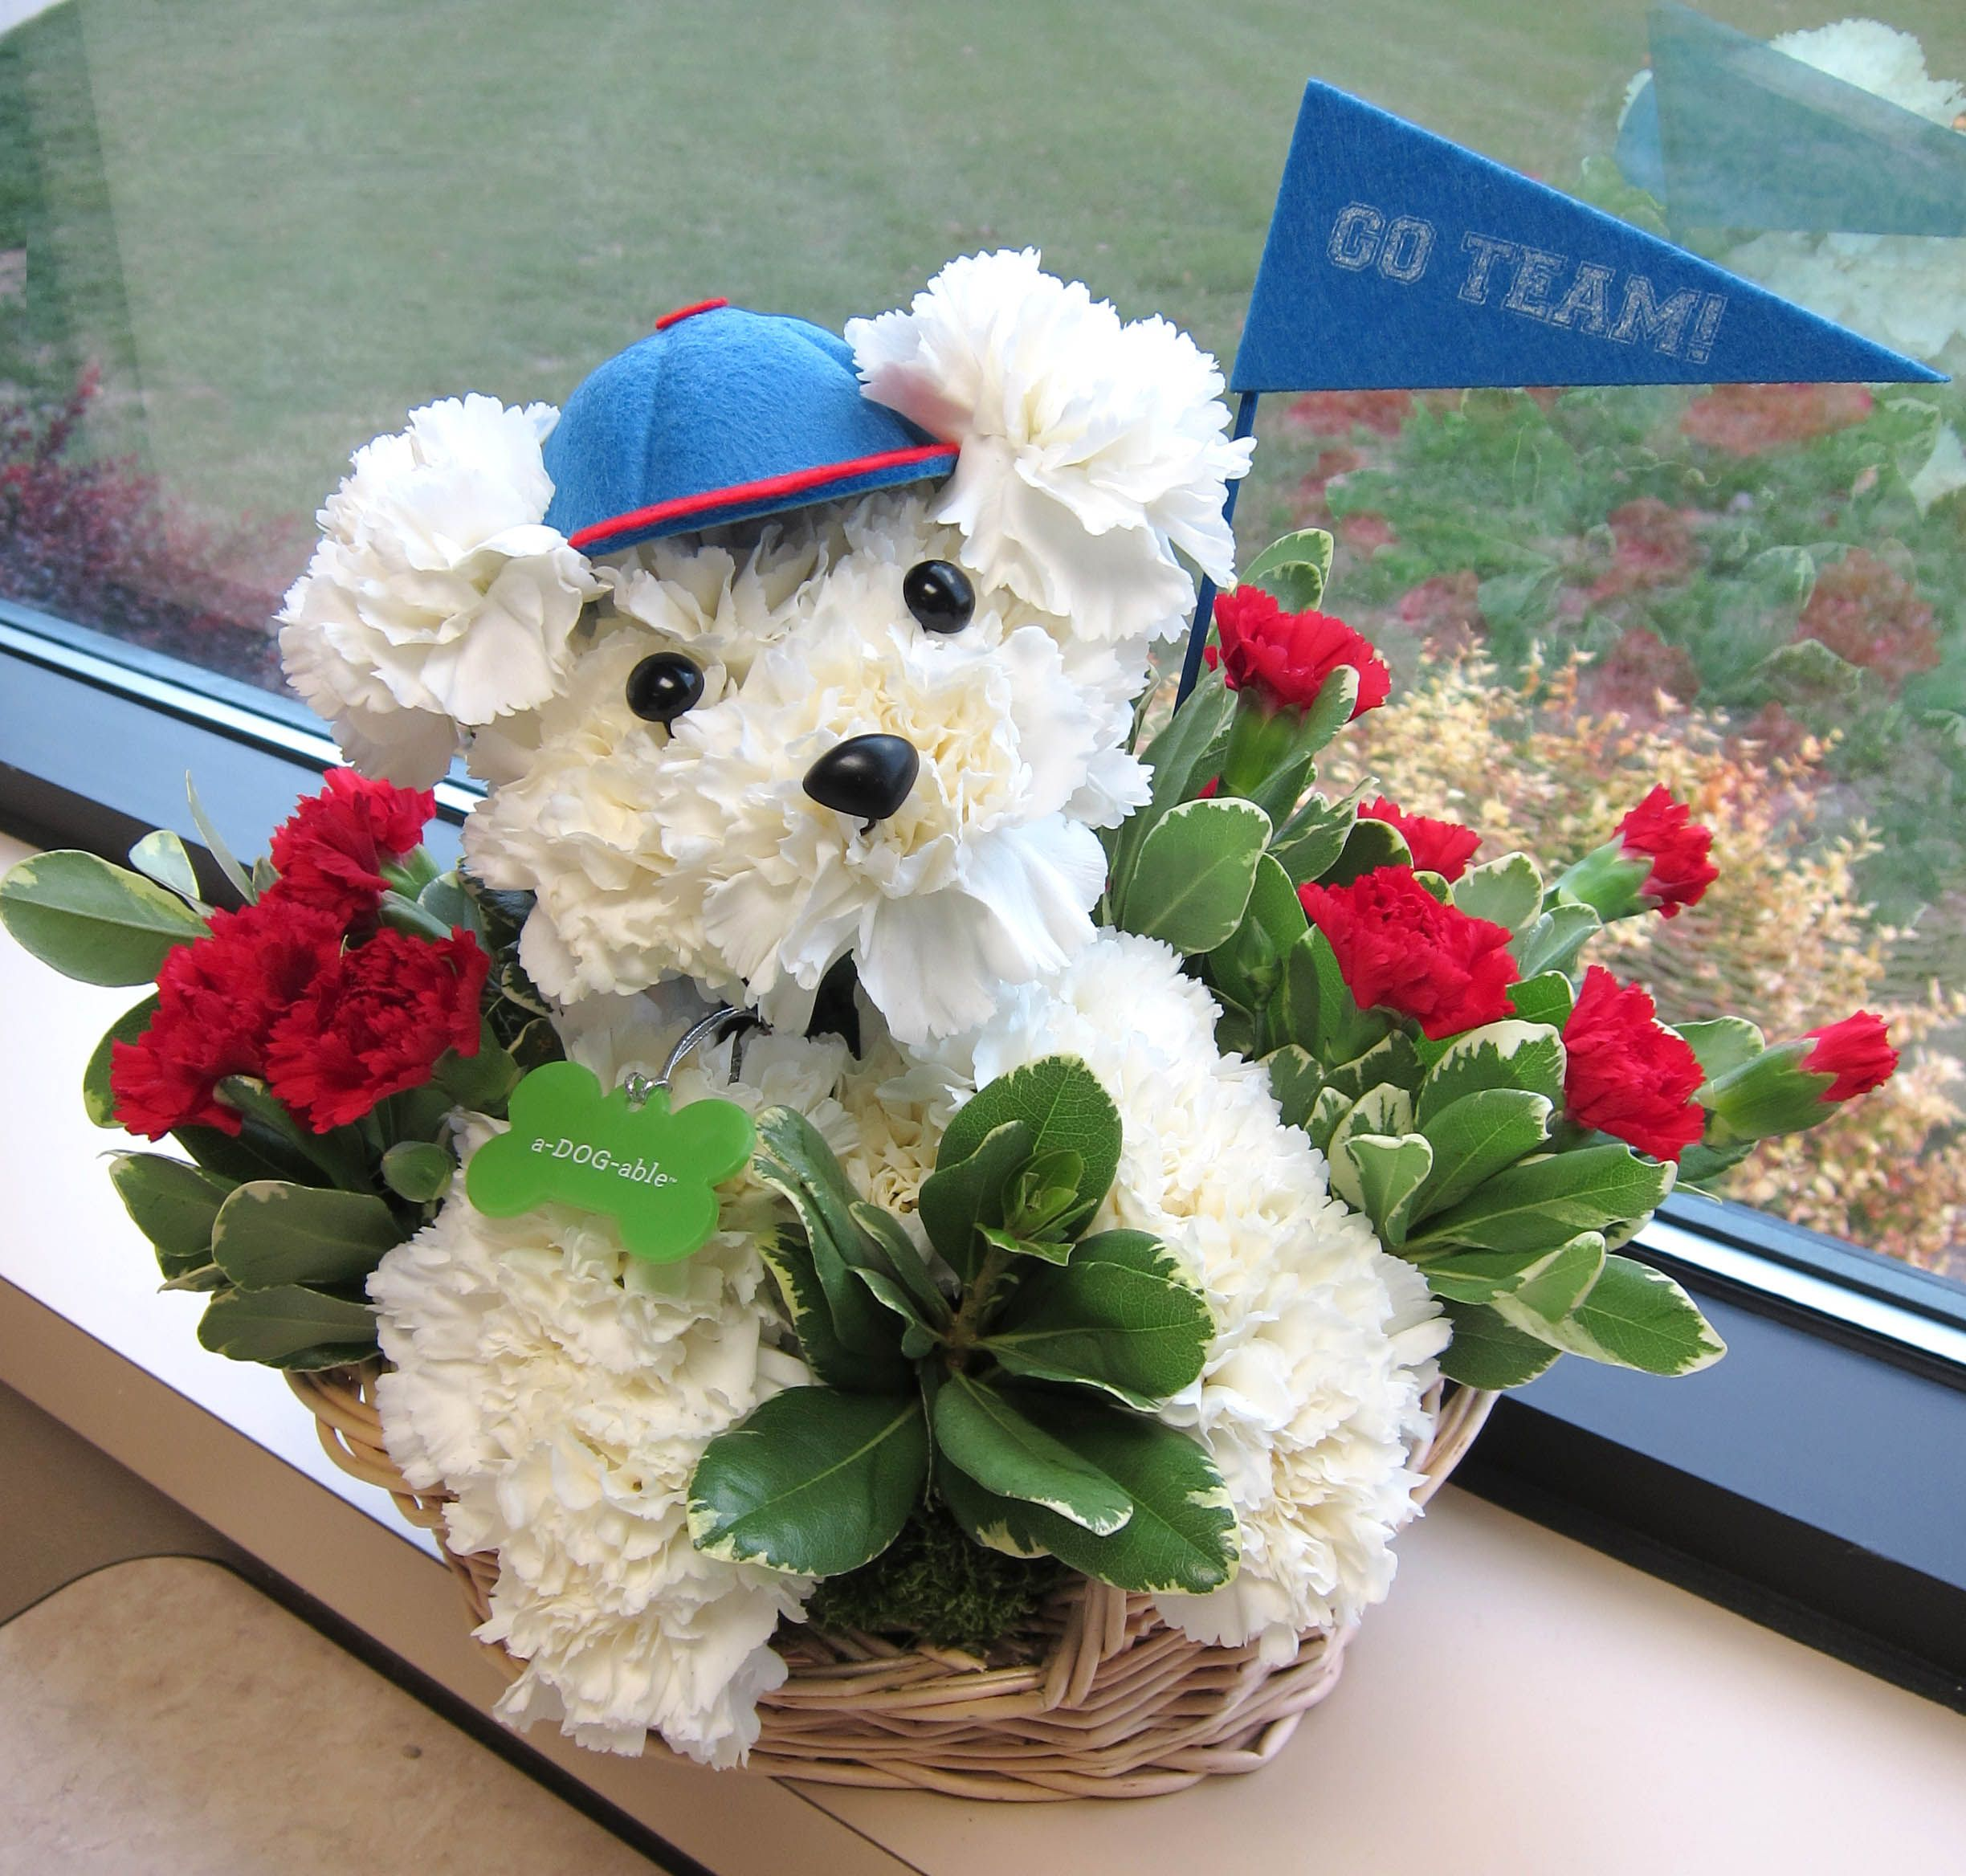 Dog gone cute flower arrangement created by the flower source www dog gone cute flower arrangement created by the flower source flower source izmirmasajfo Gallery